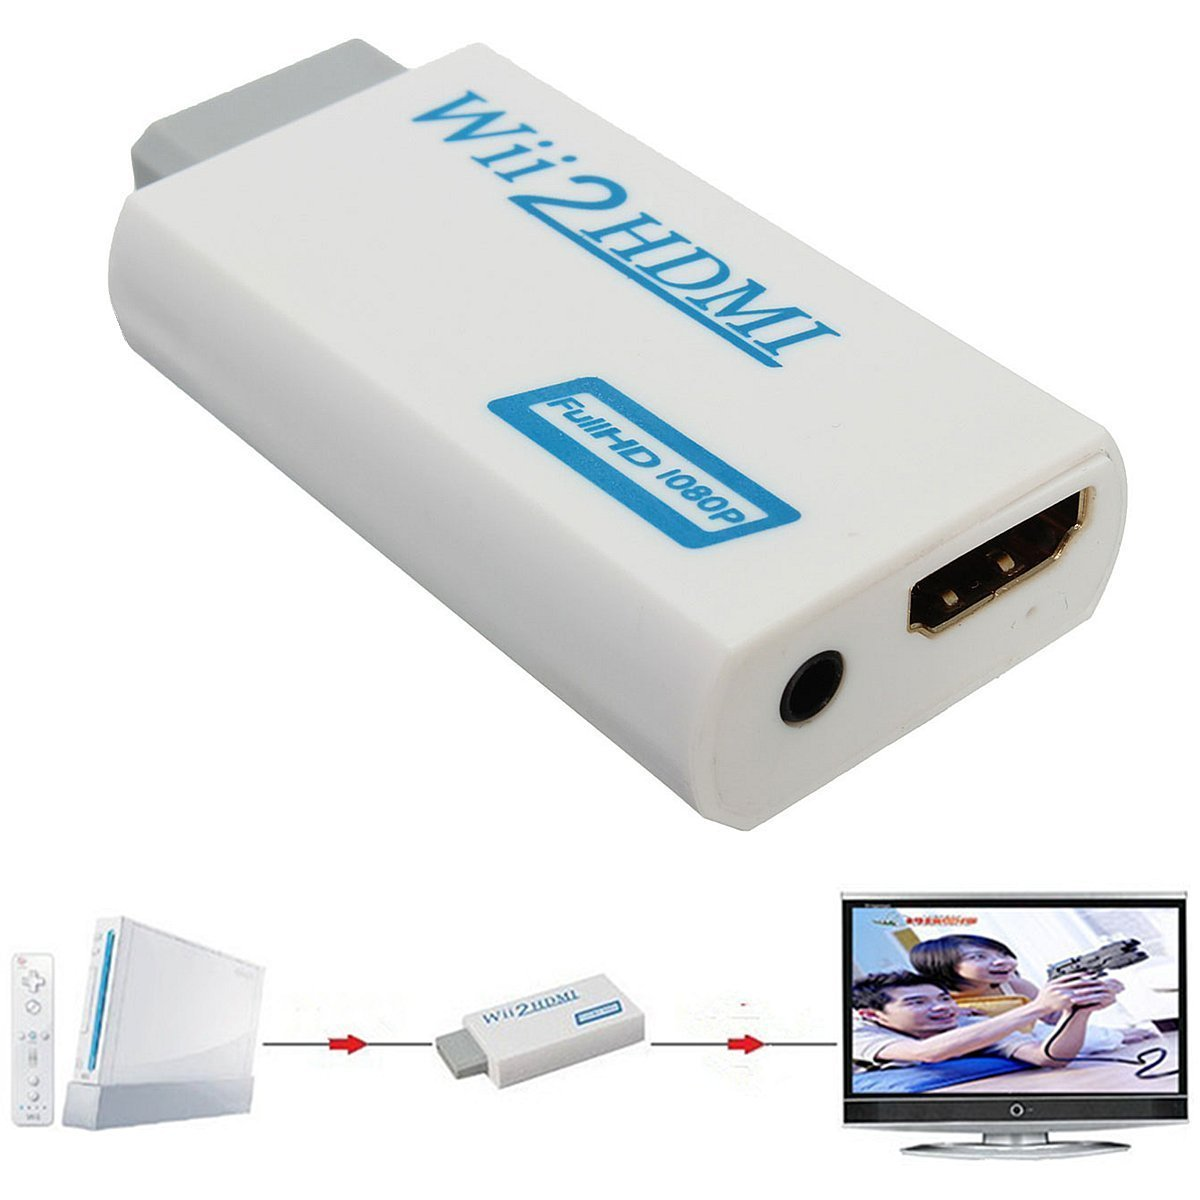 UniLink (TM) Wii to HDMI Video Converter Adapter 480P 720P with 3.5mm Audio Output Supports All Wii Display Modes DIGIPARTS 60-141